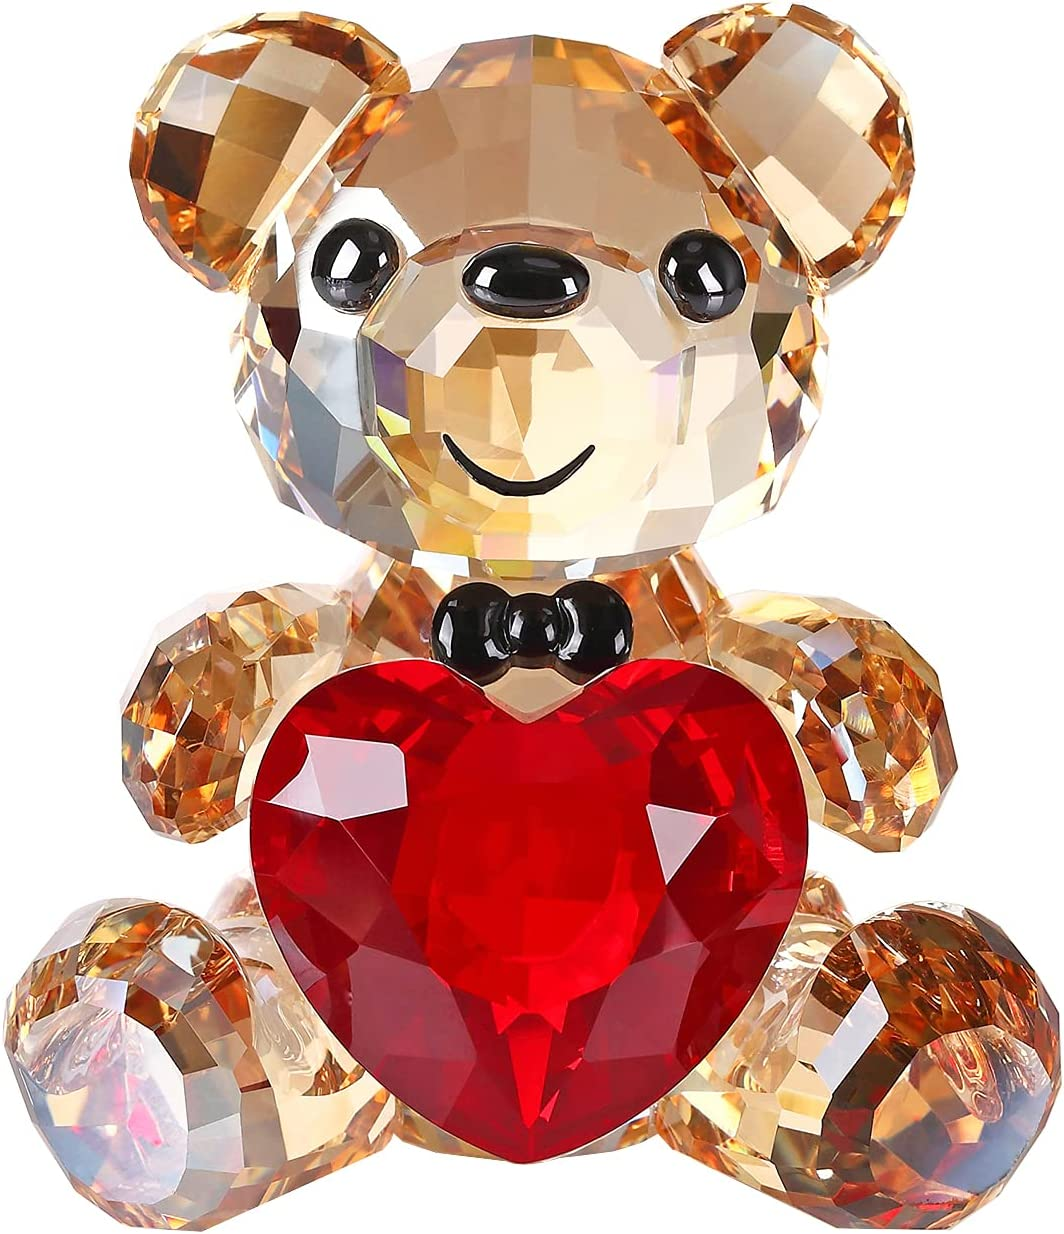 Crystal Sale High material special price Teddy Bear Figurine Red Heart Animal Lovely Collectible